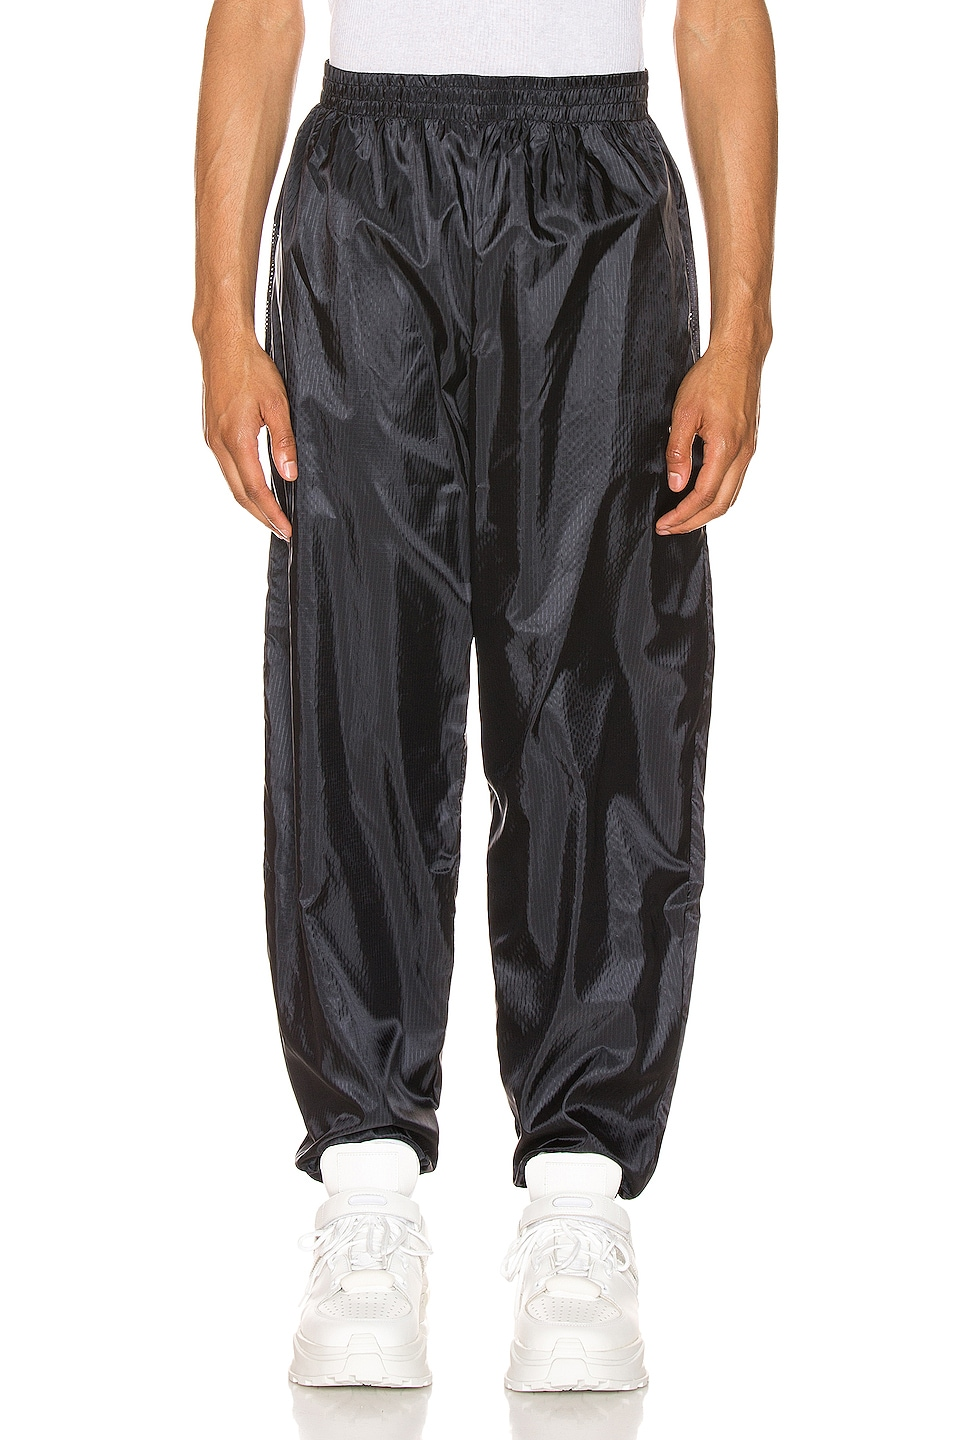 Shield Logo Jogging Trousers by GMBH, available on fwrd.com for EUR159 Kourtney Kardashian Pants Exact Product